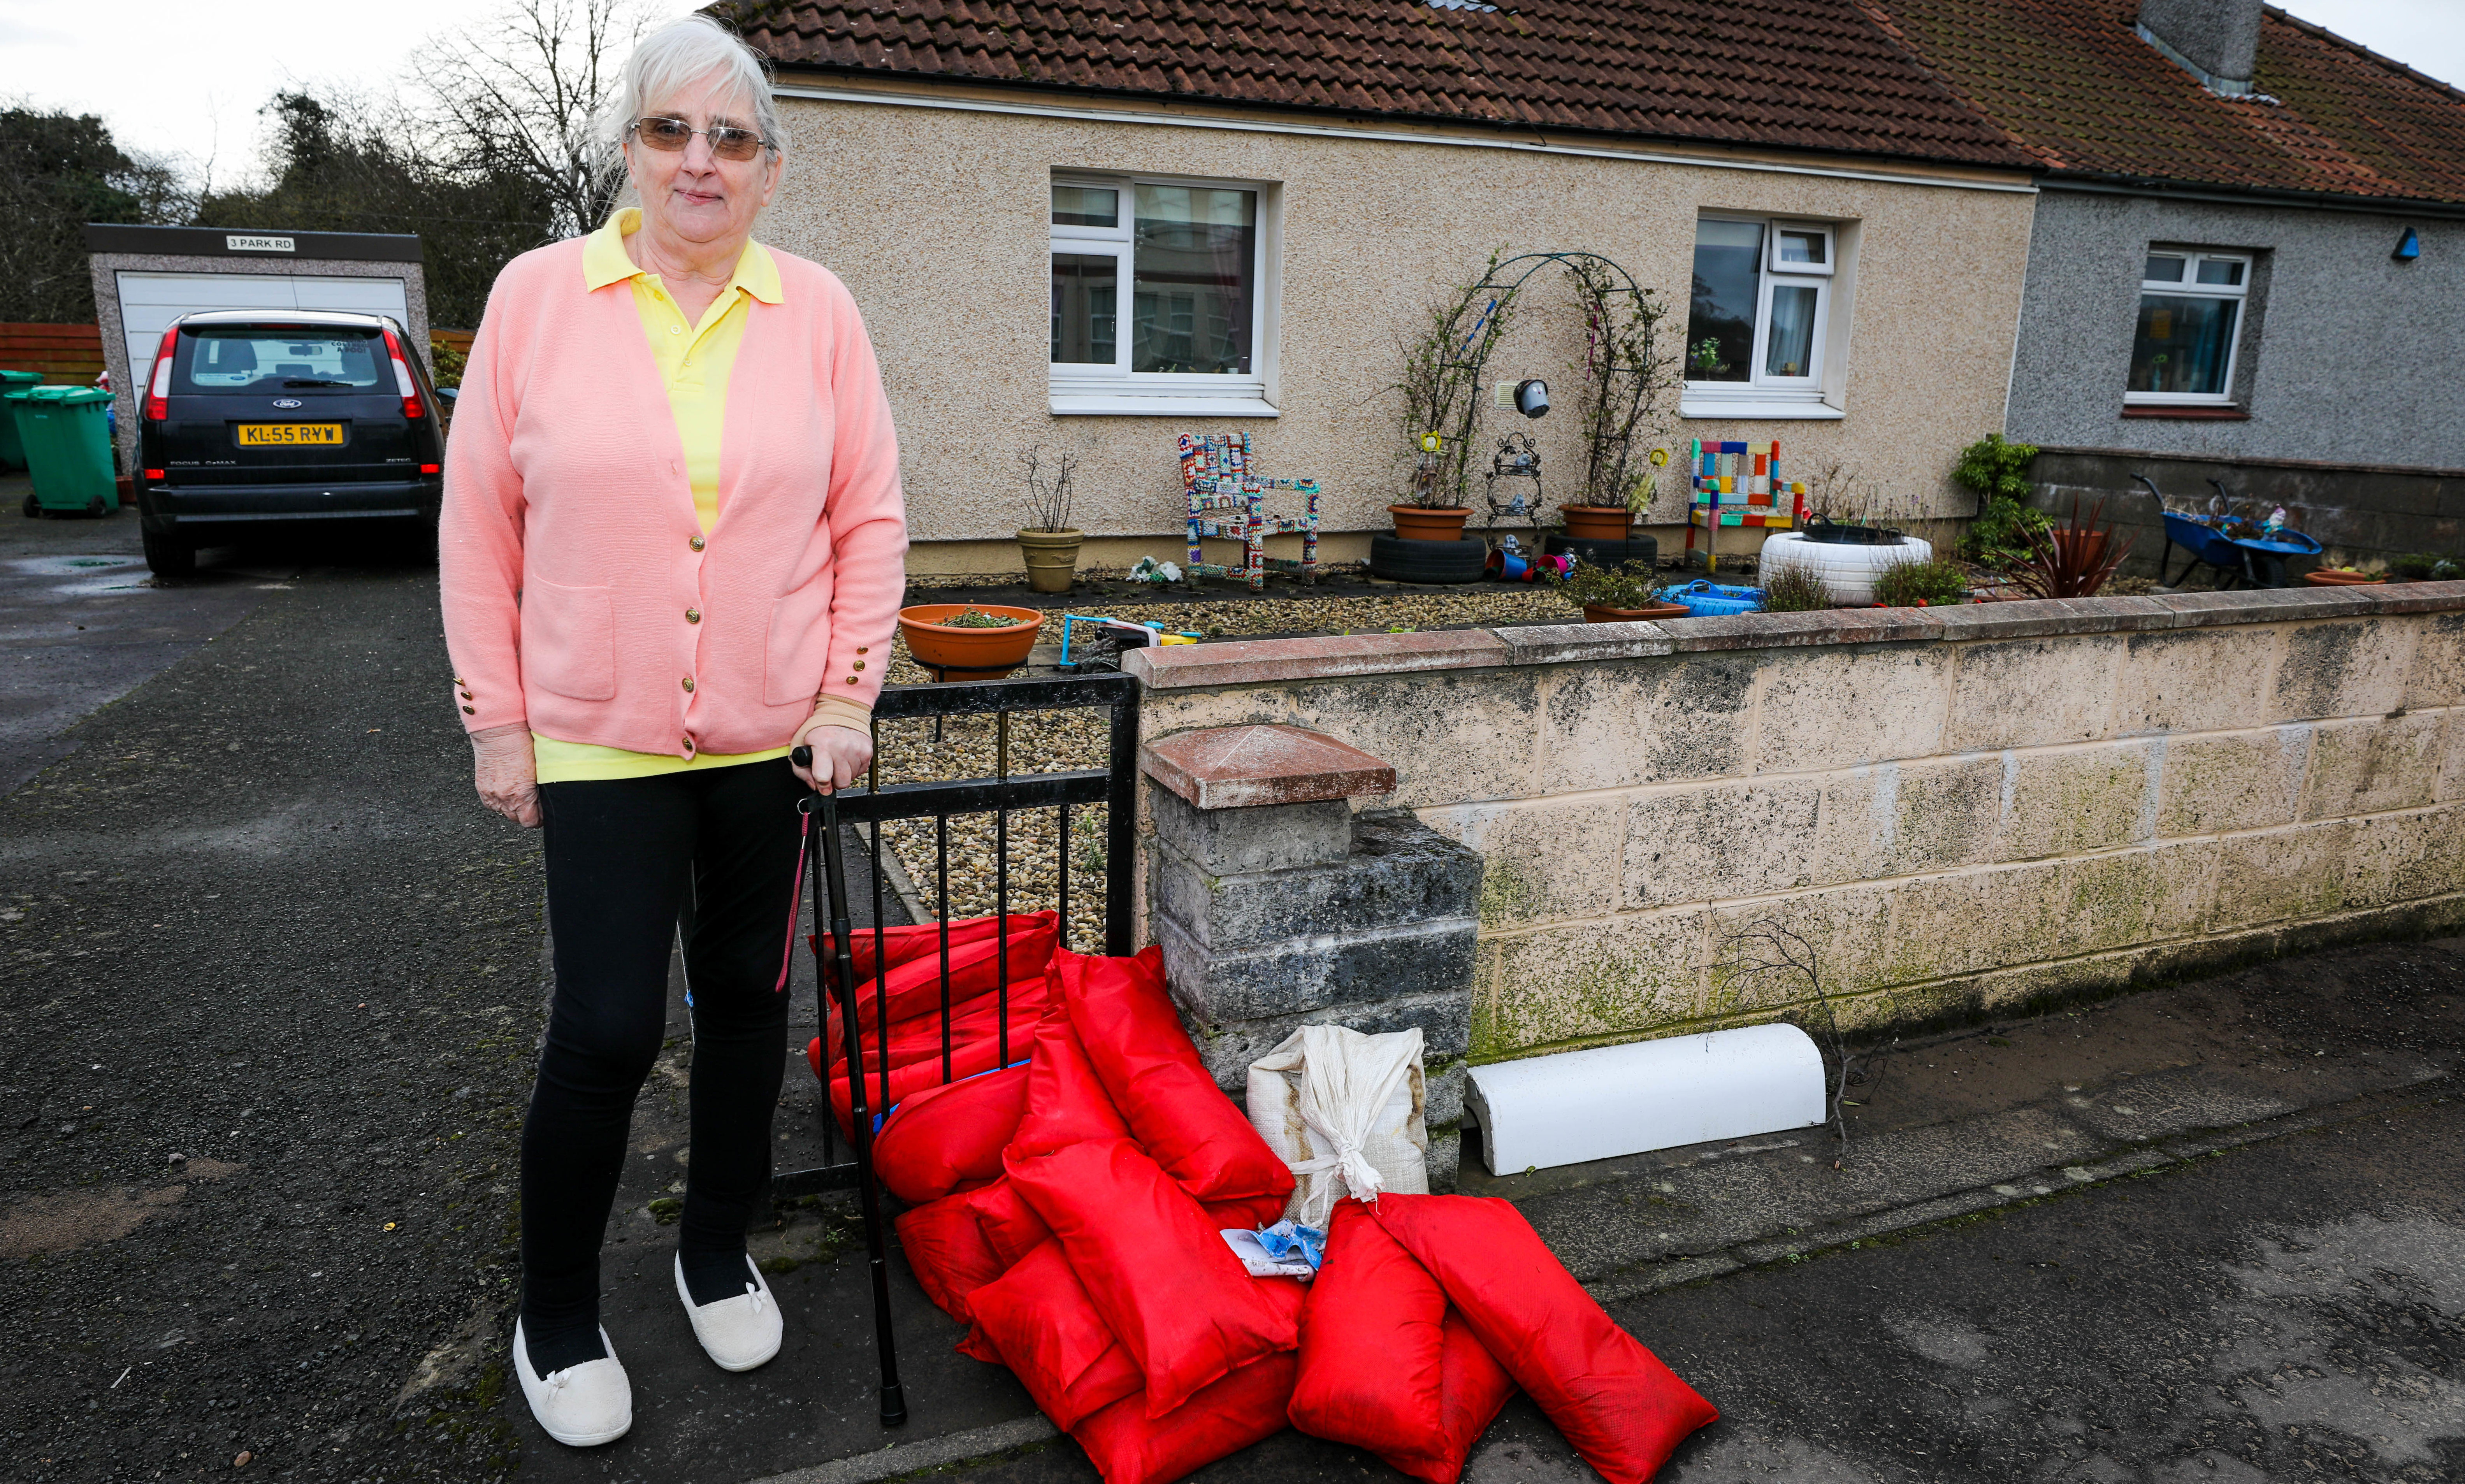 Annette Young outside her home.